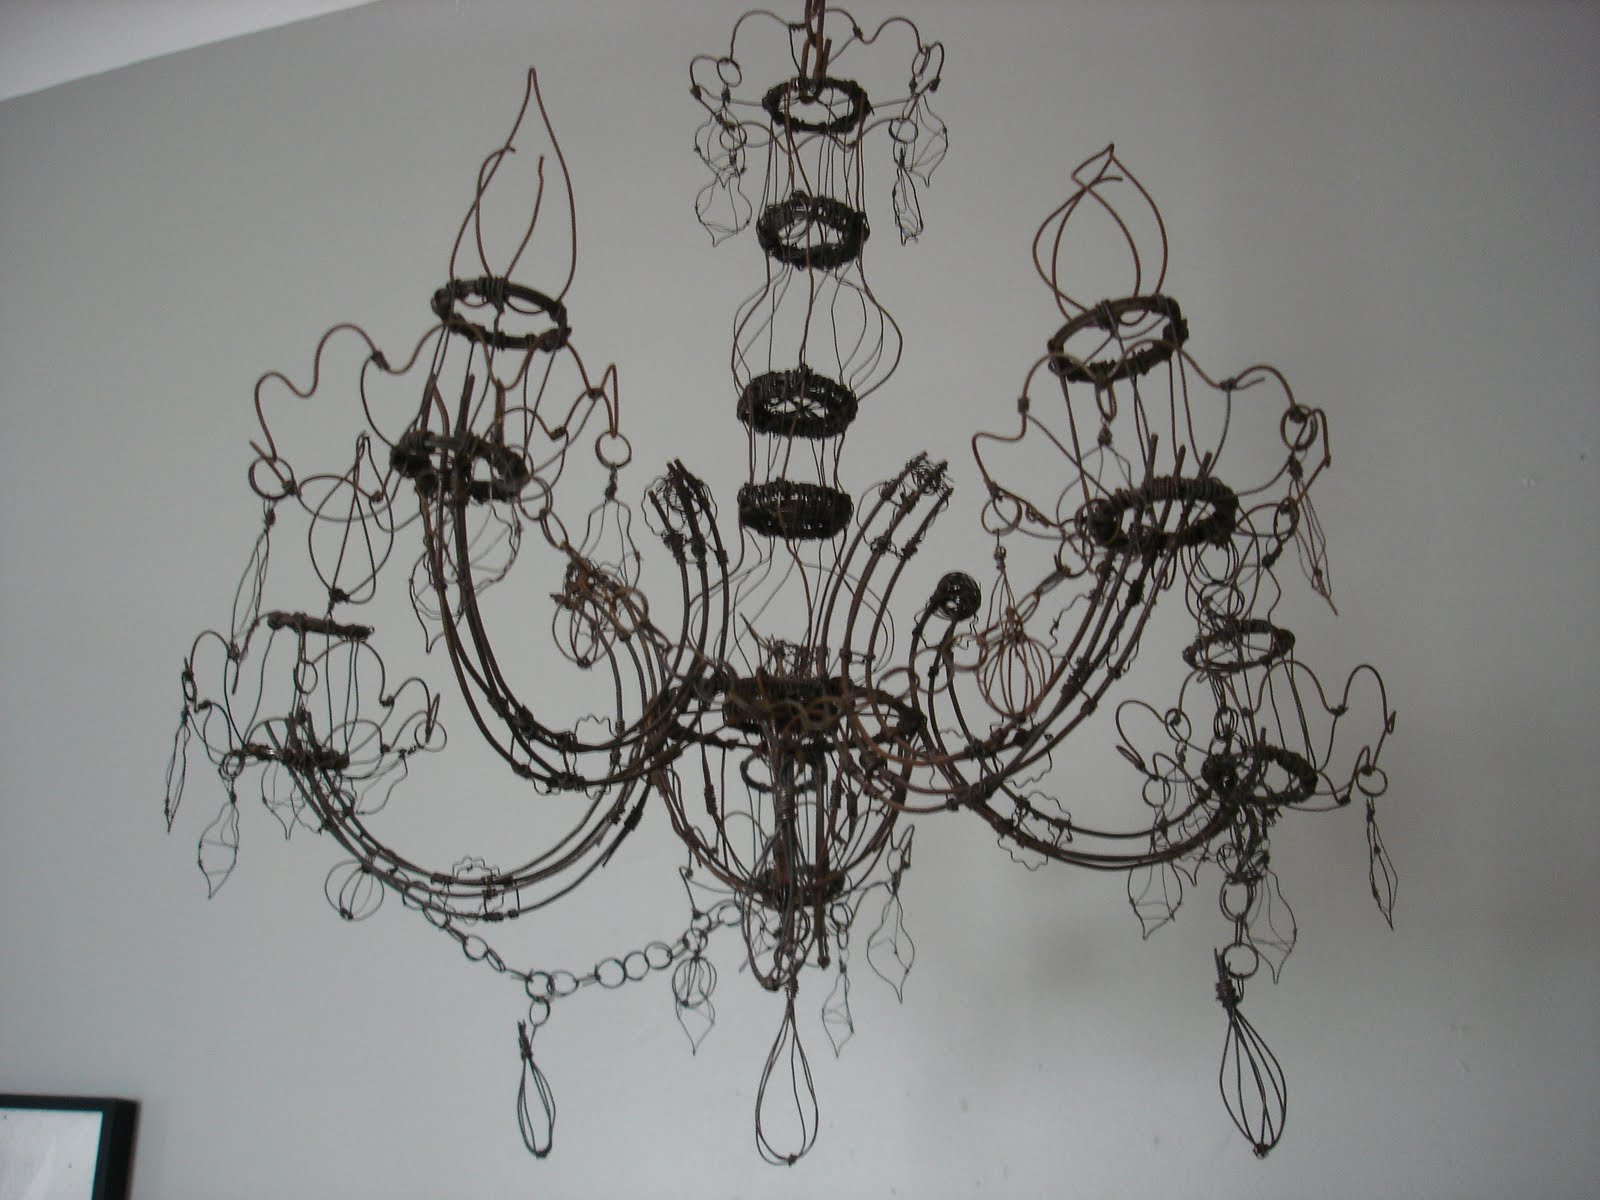 17 Best images about wire Chandeliers on Pinterest | Wire hanger ...:17 Best images about wire Chandeliers on Pinterest | Wire hanger crafts,  Old lamp shades and Metals,Lighting